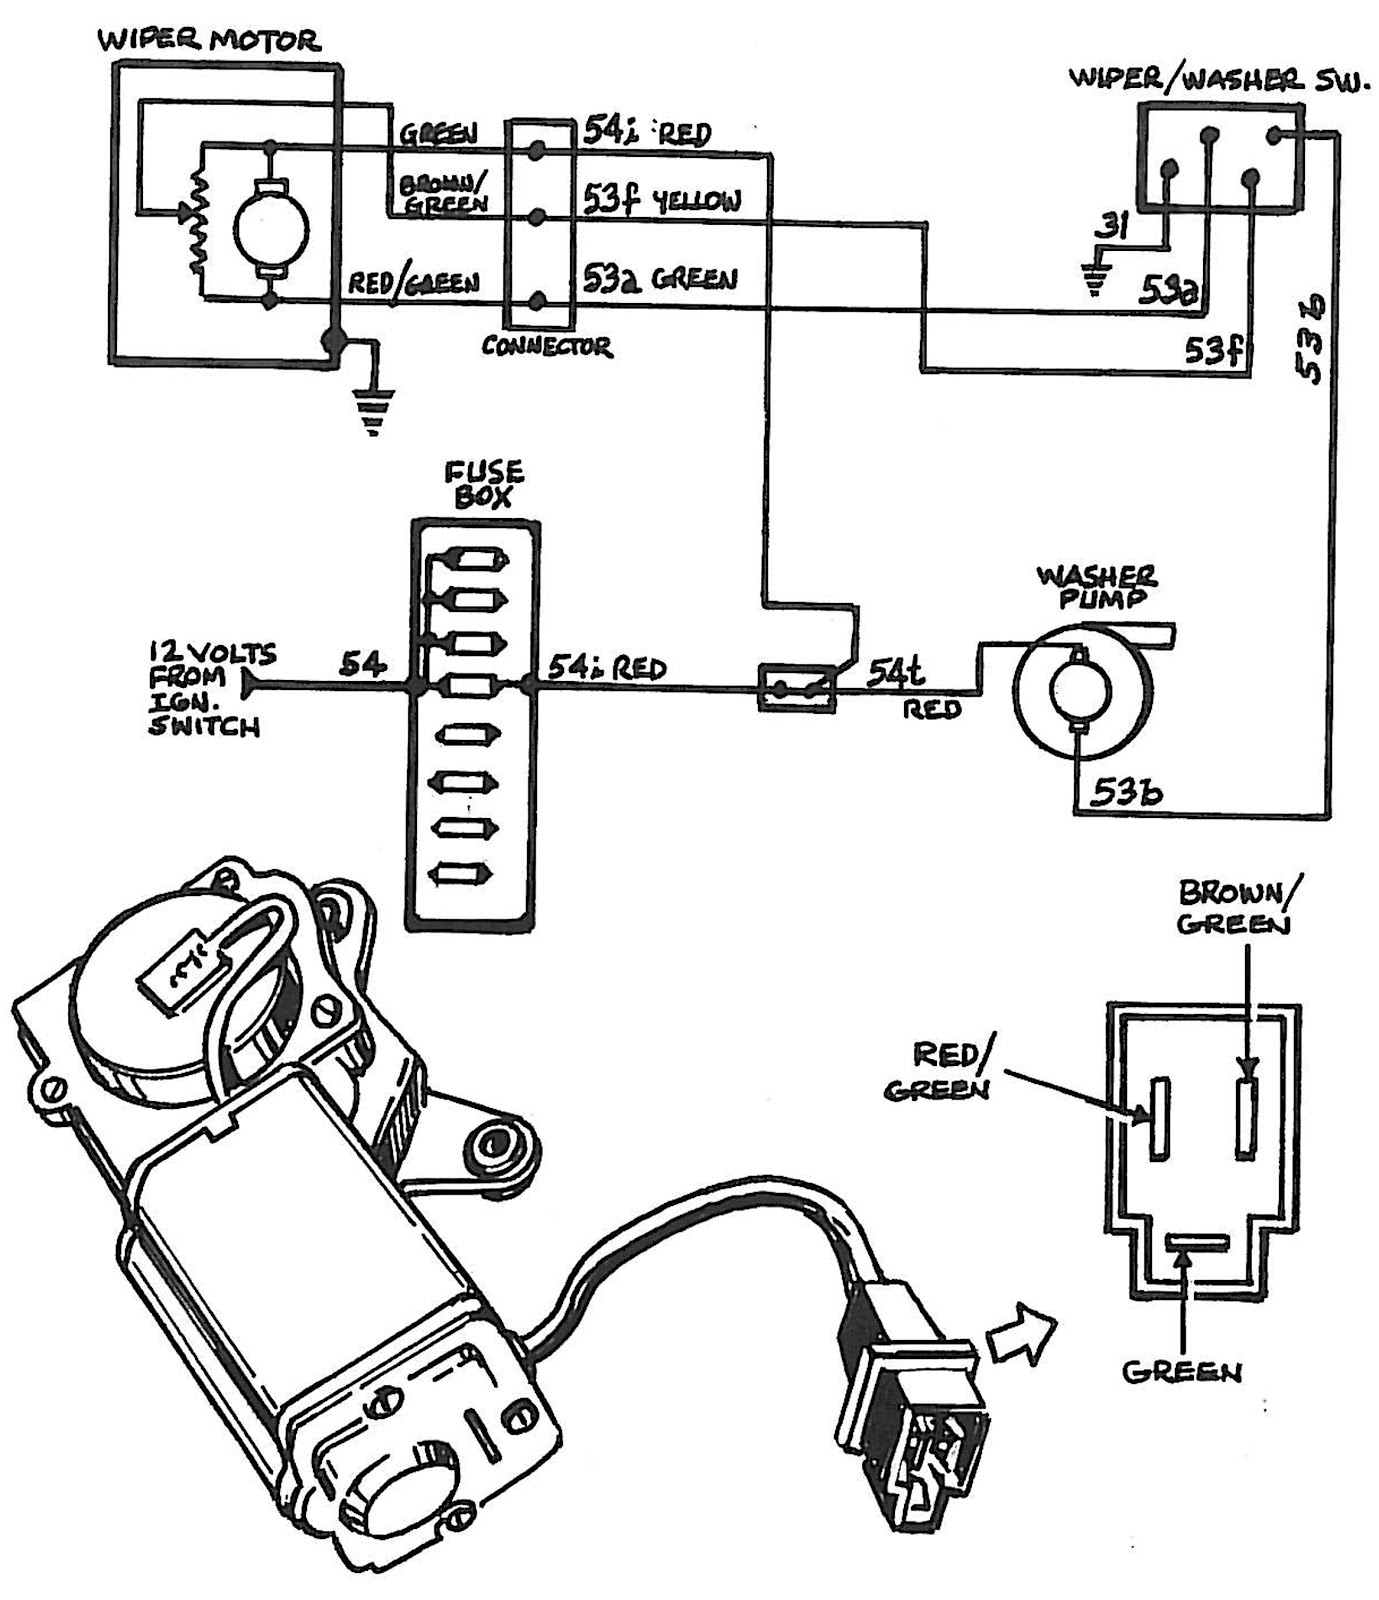 3 wire electric motor wiring diagram saab journal: early windshield wiper motor rebuild 3 wire wiper motor wiring diagram